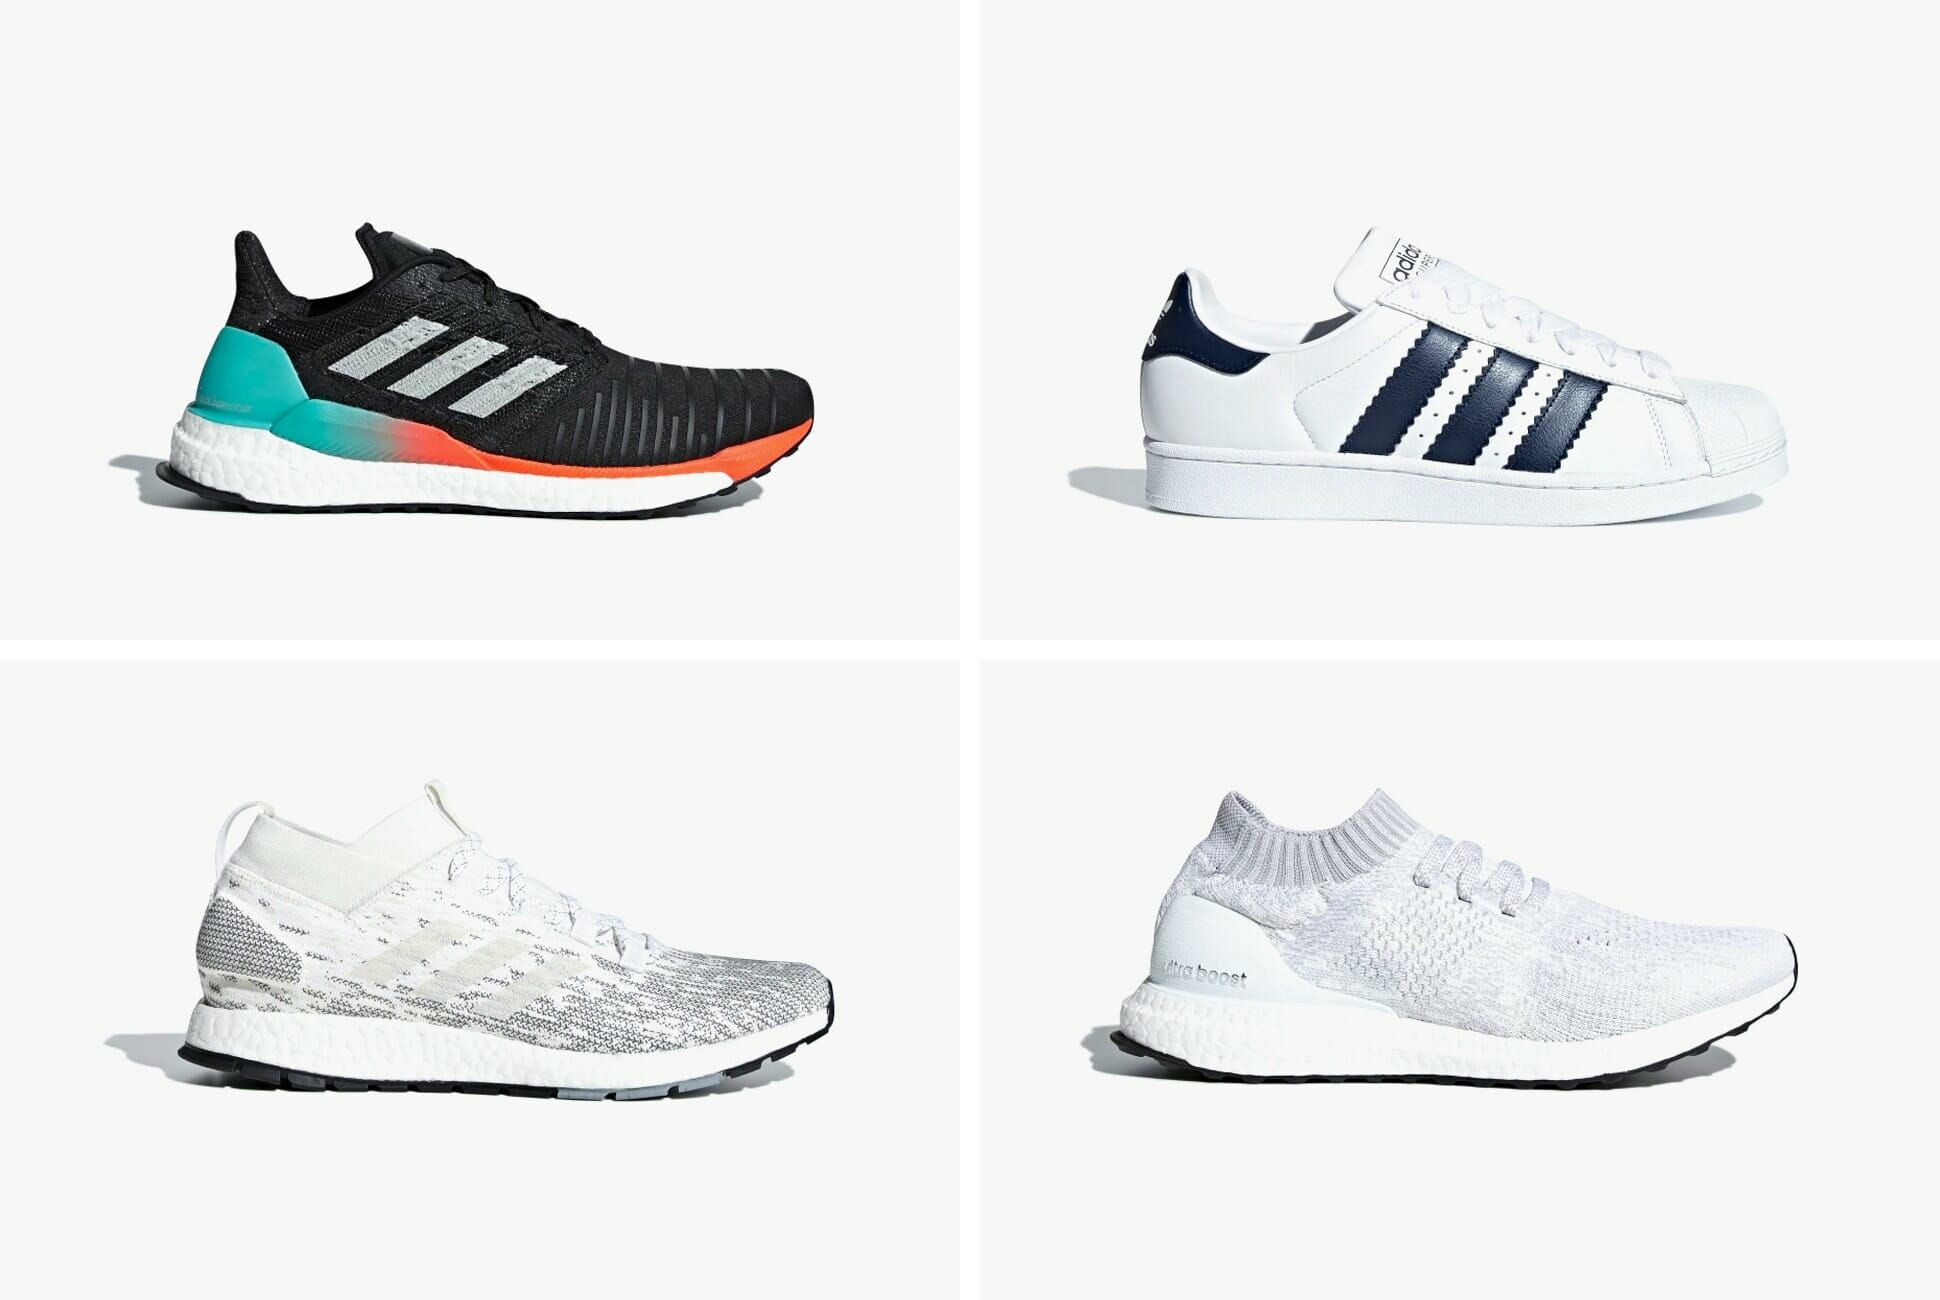 Best-Selling Adidas Sneakers Today